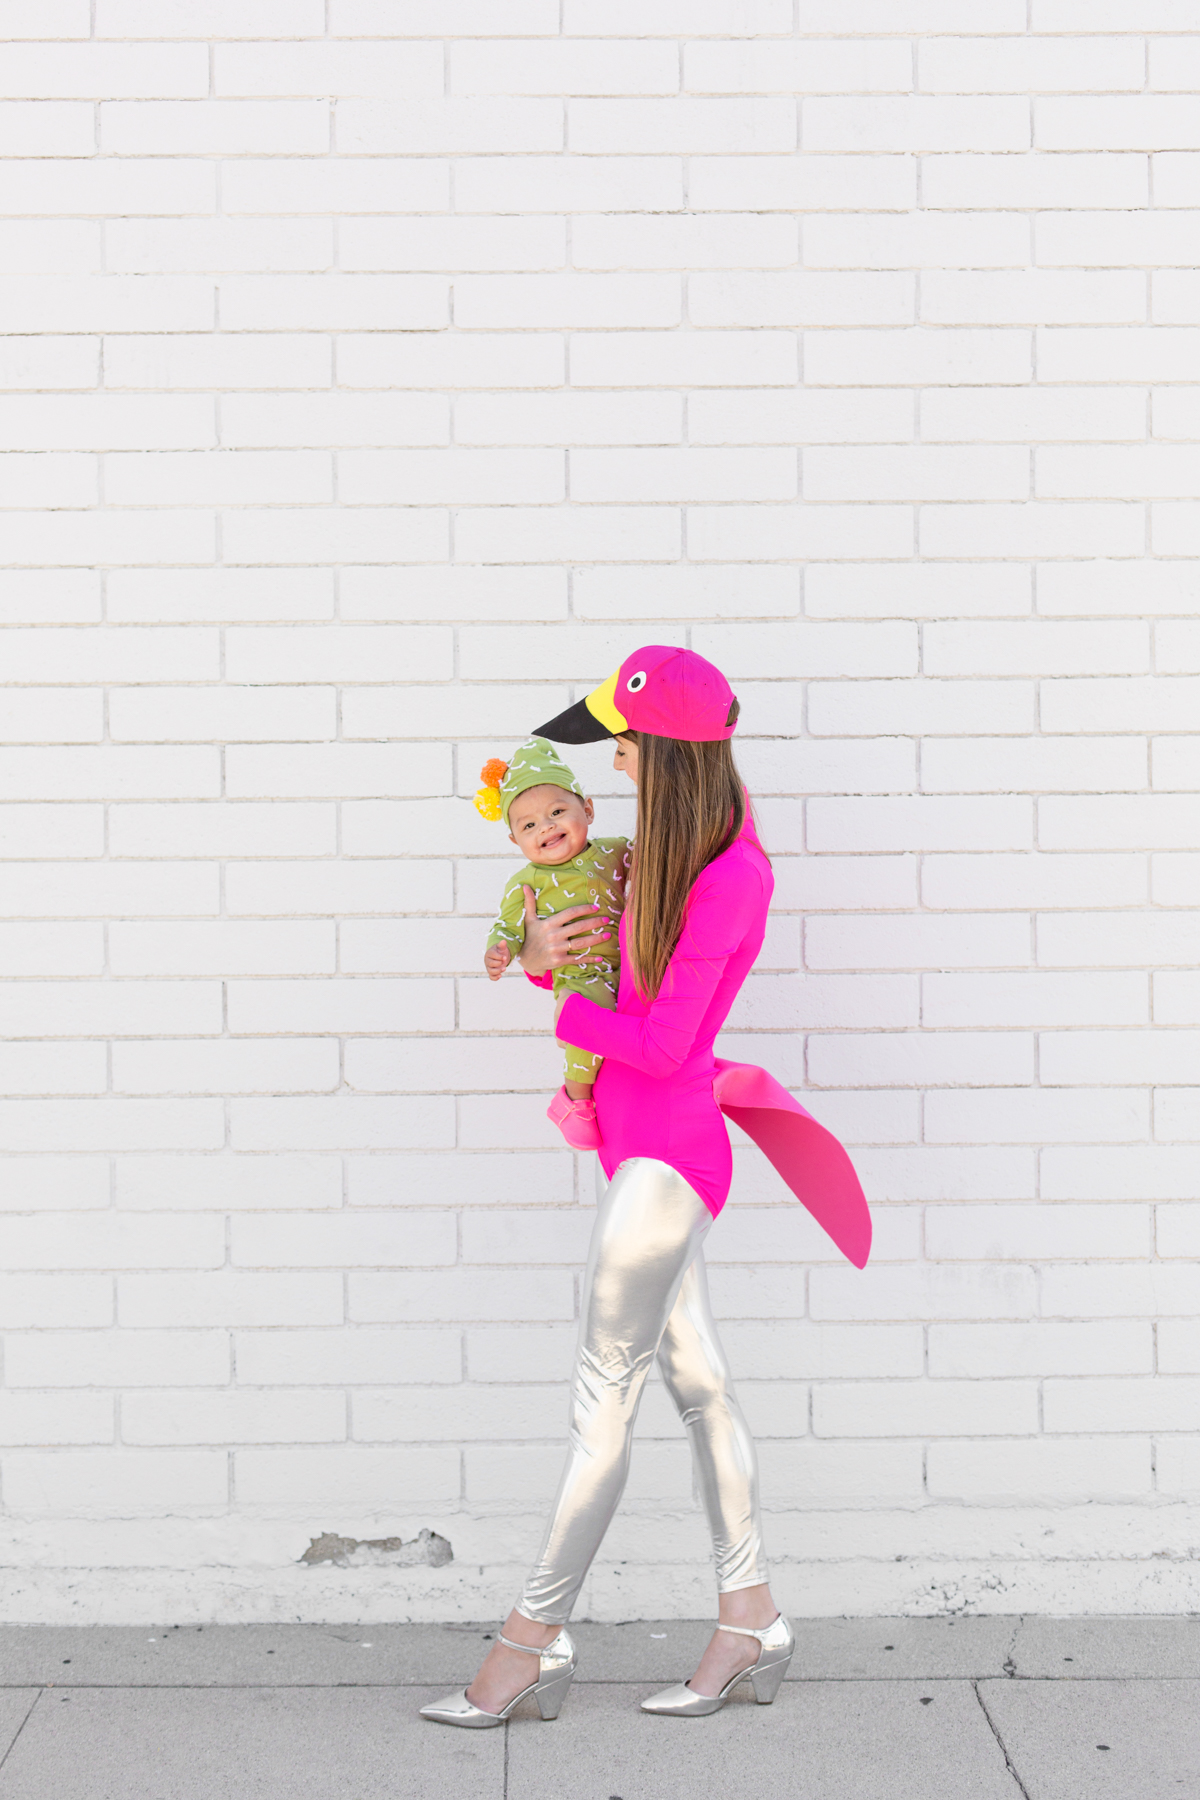 Diy Lawn Flamingo And Cactus Mommy And Me Costume Studio Diy